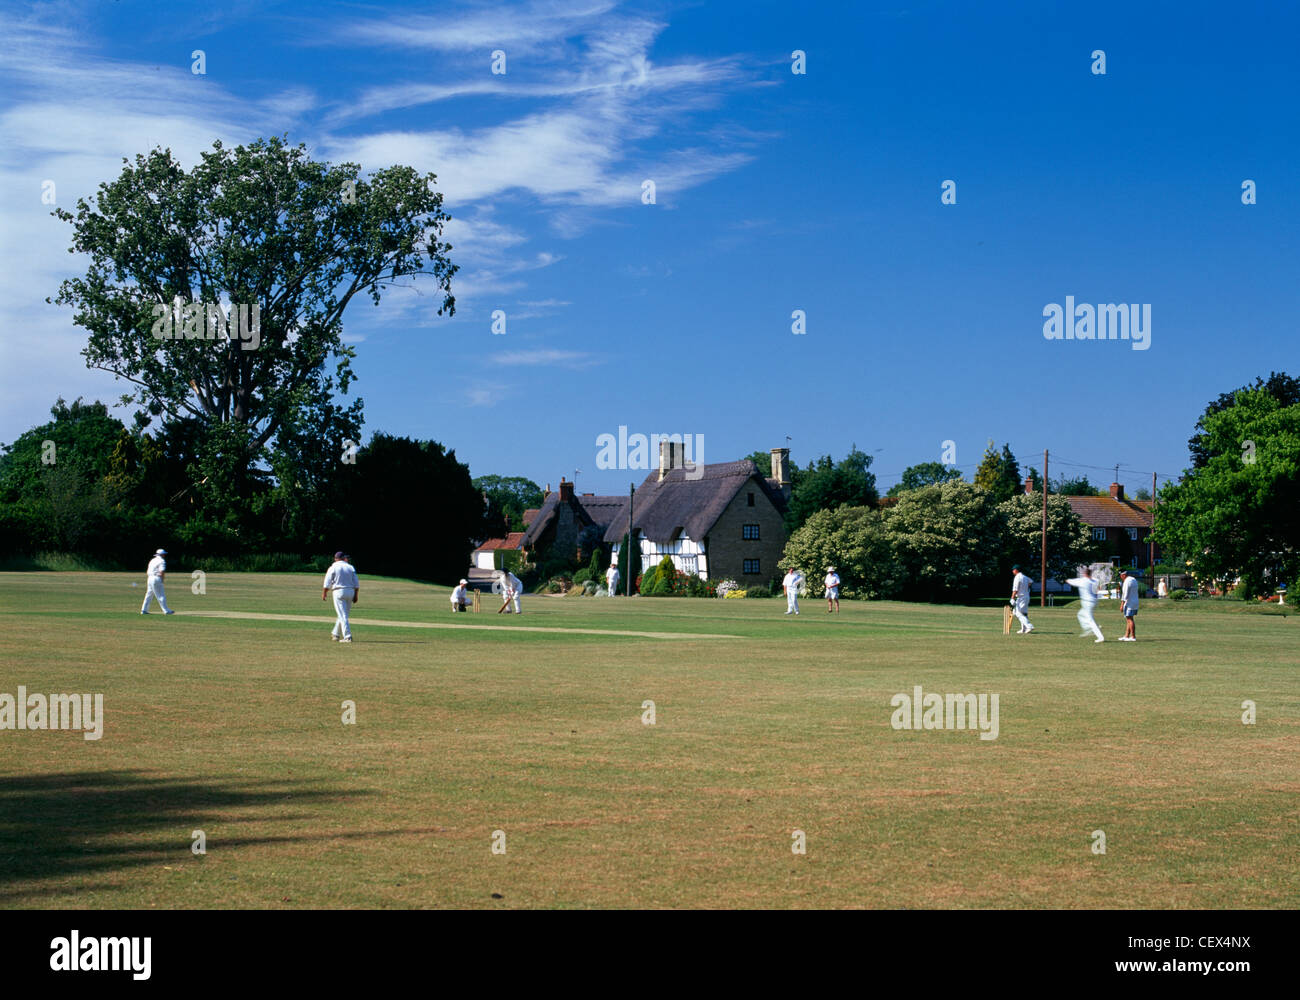 A Sunday afternoon cricket match in the village of Elmley Castle. Stock Photo